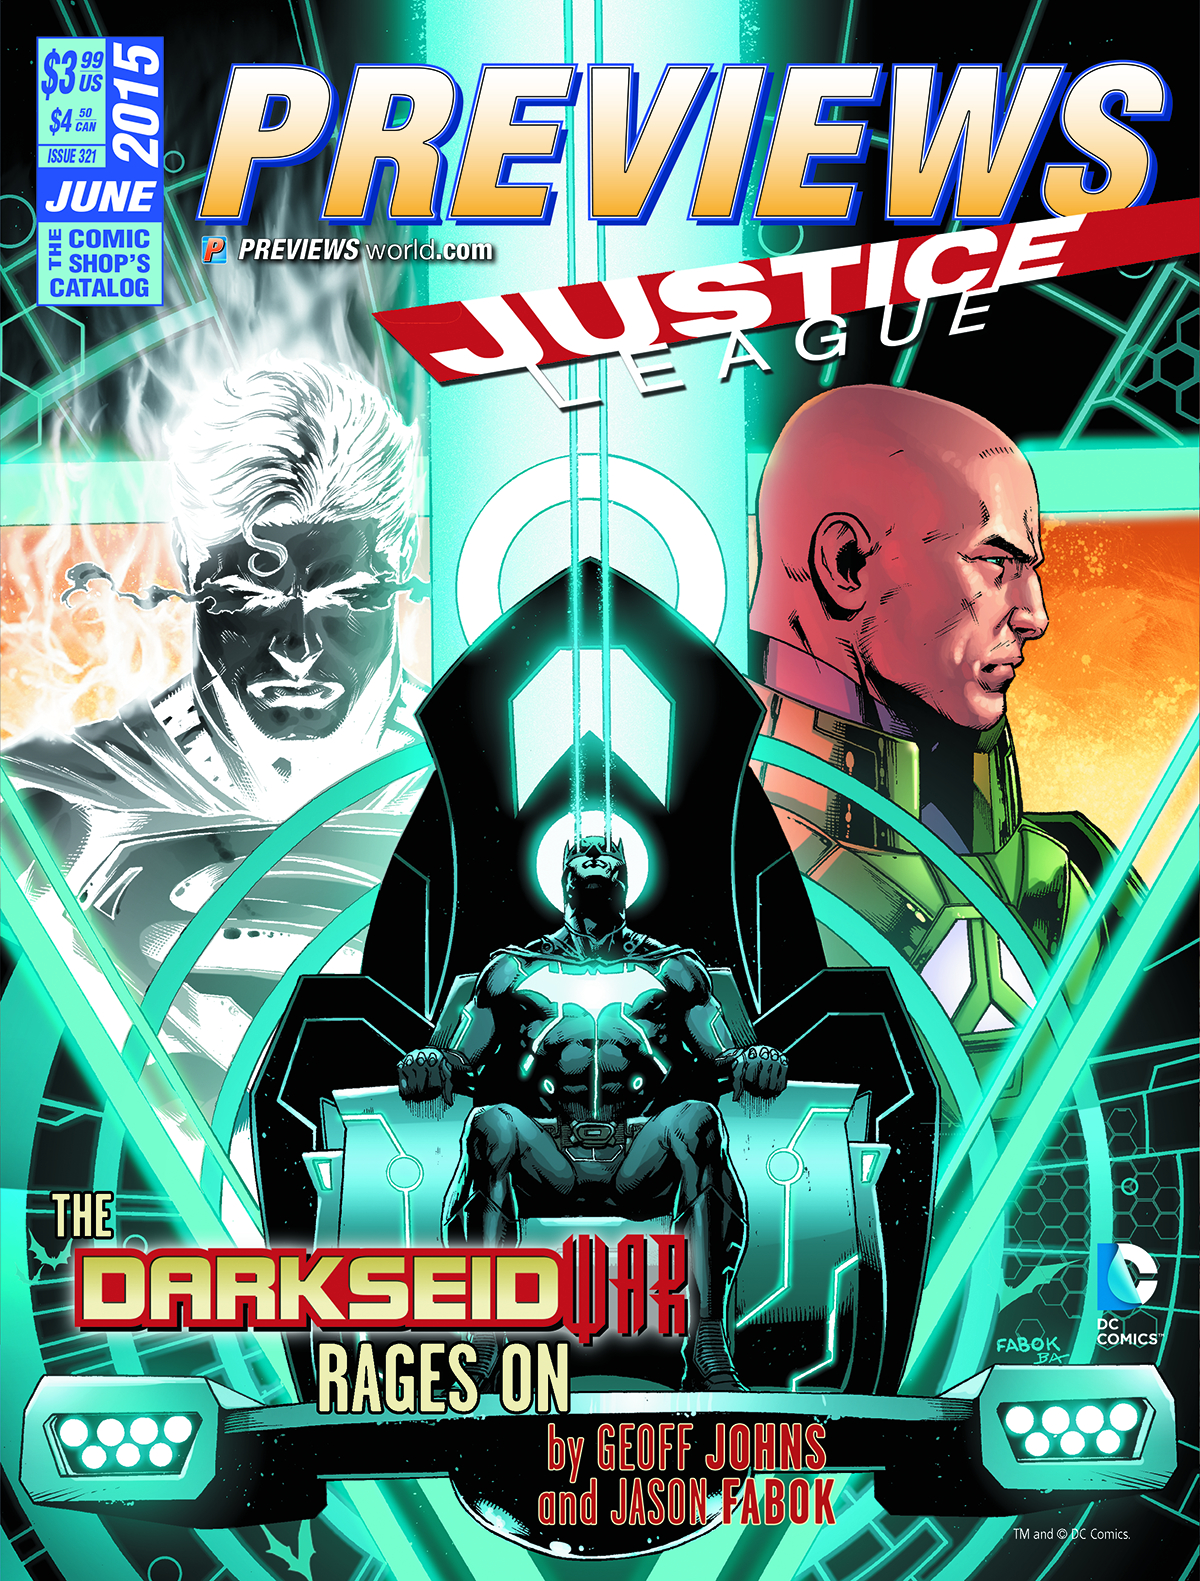 PREVIEWS #323 AUGUST 2015